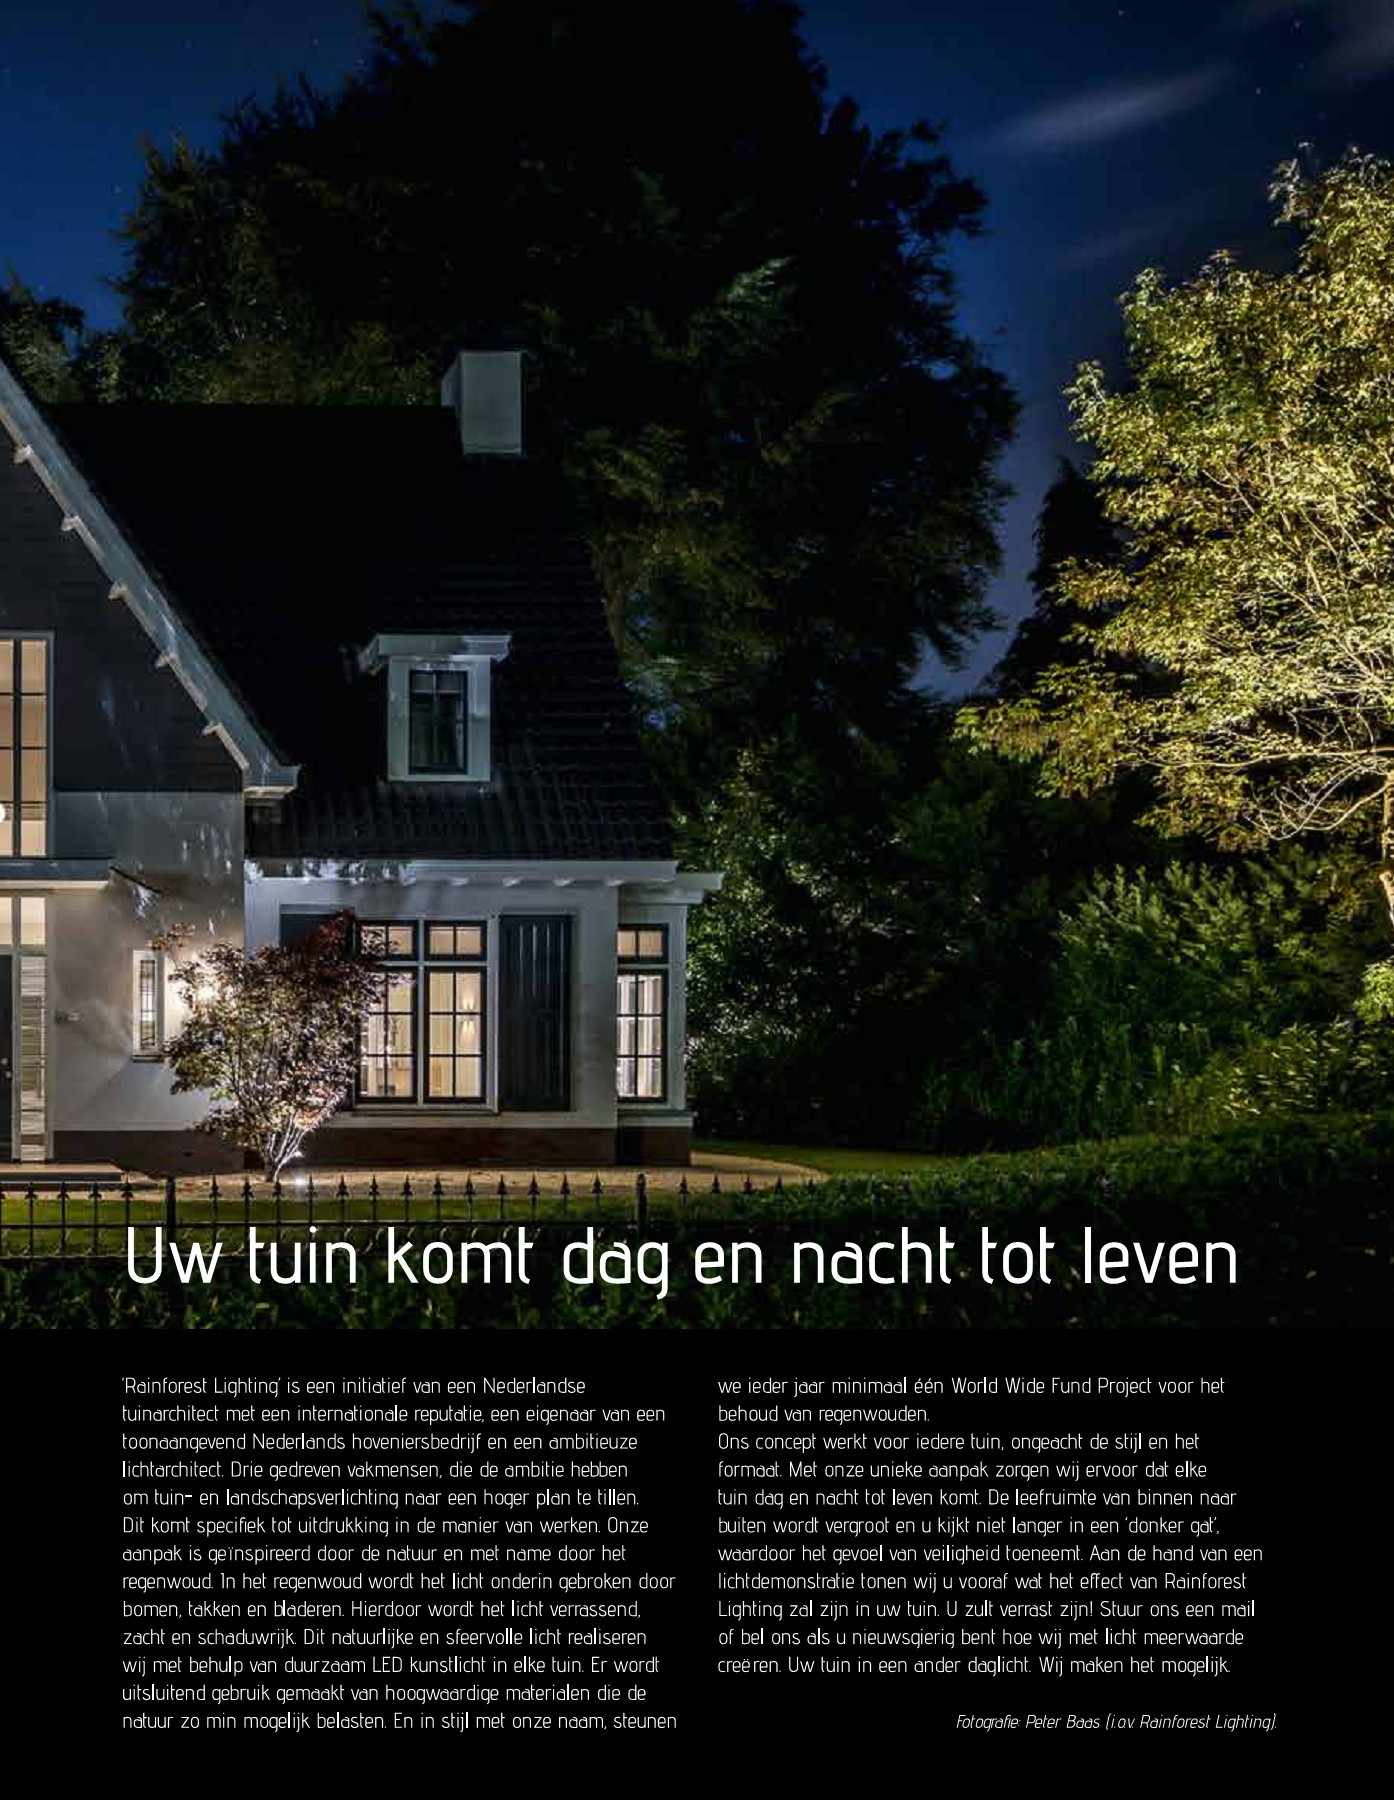 Tuinmeubelen Xxl Turnhout Exc 1 2019 Pages 51 100 Text Version Fliphtml5